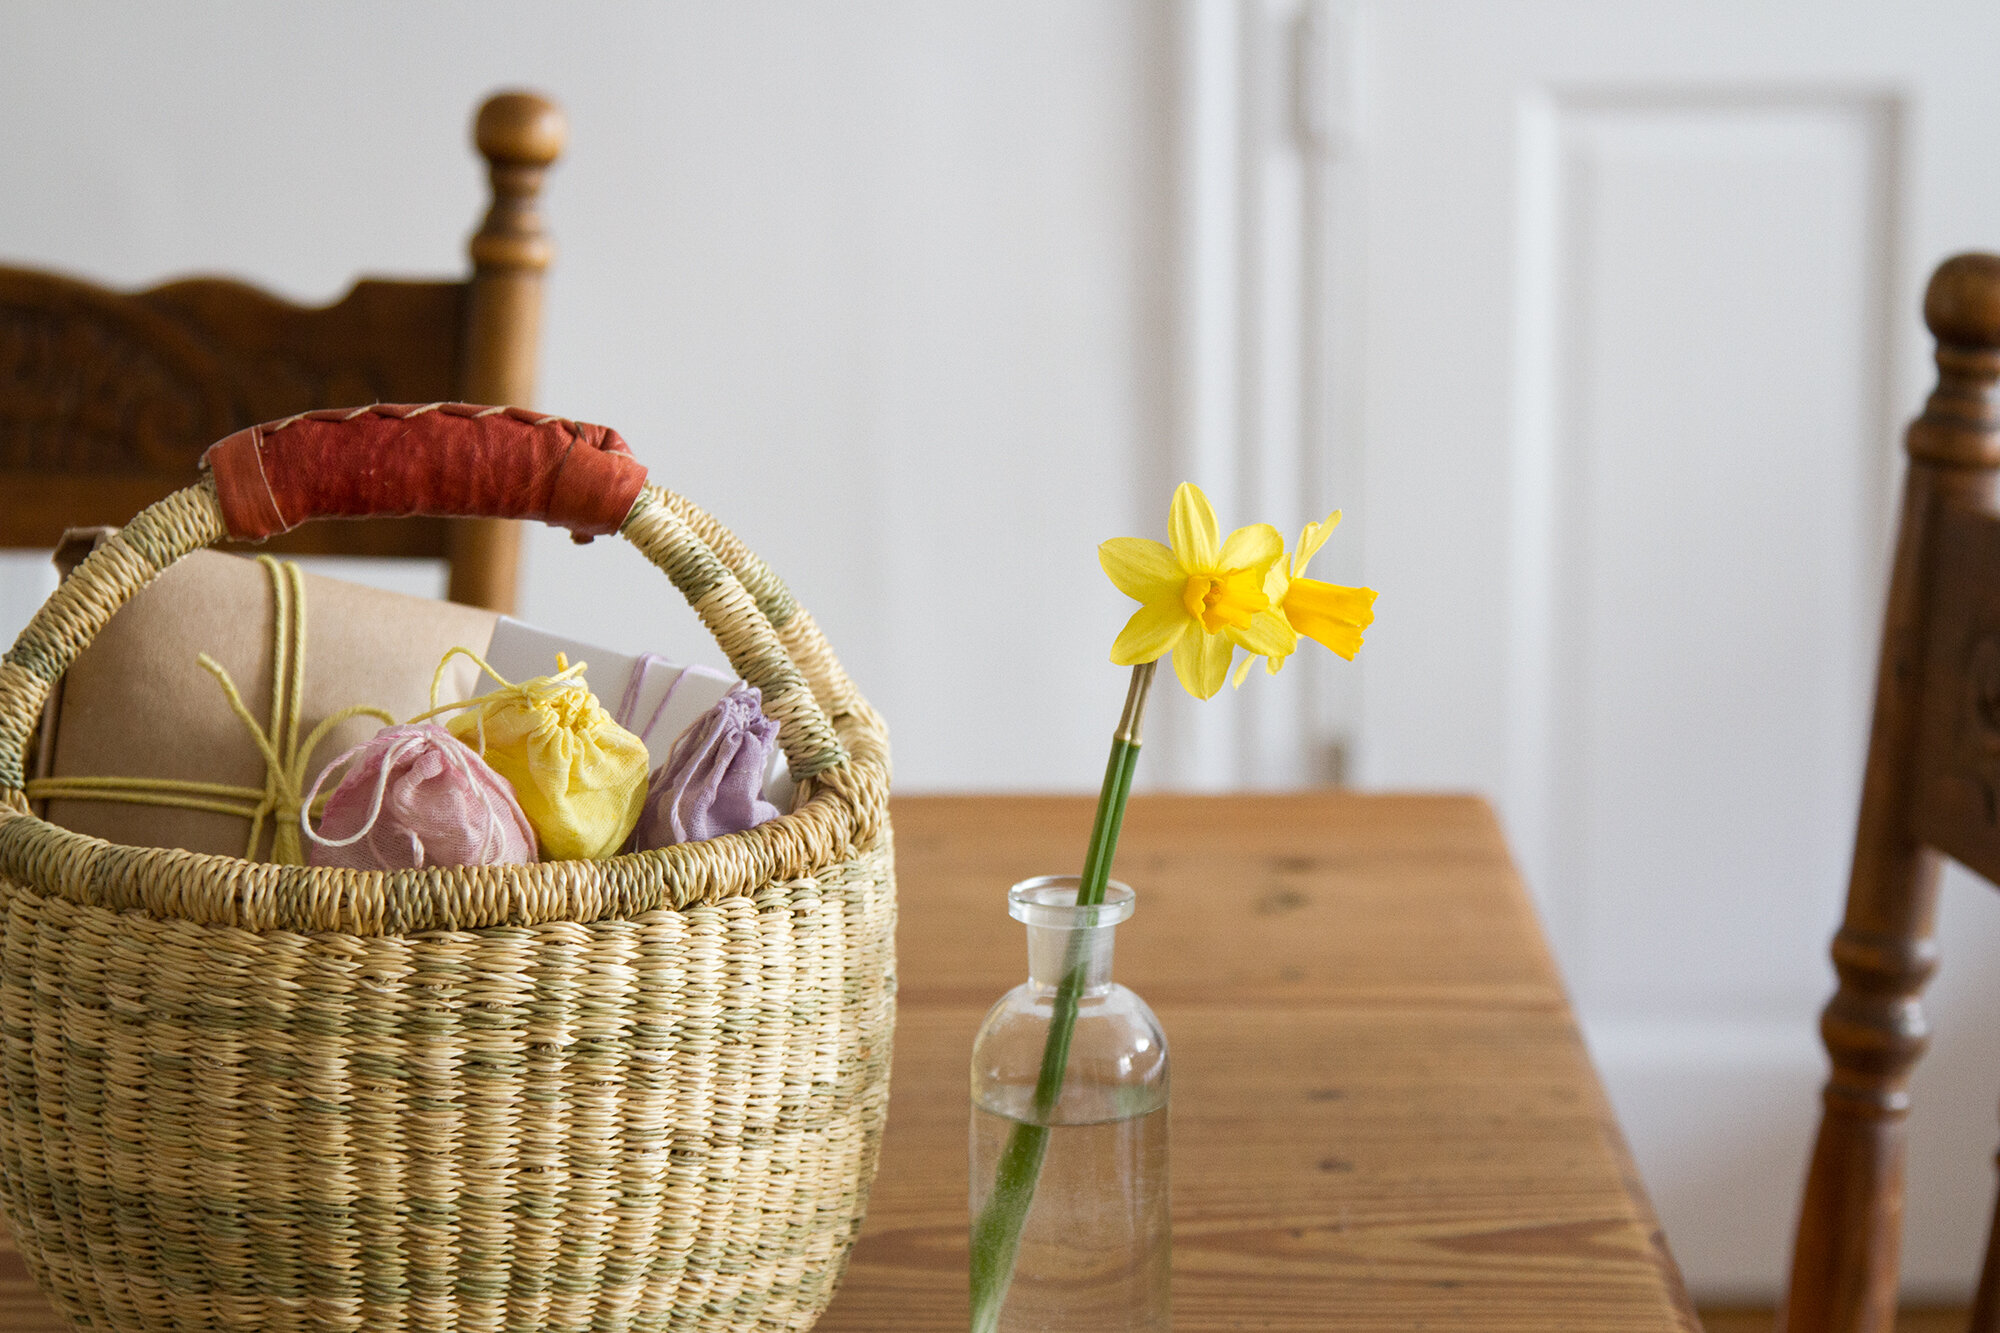 pastel-colored butchers twine with natural dye | reading my tea leaves